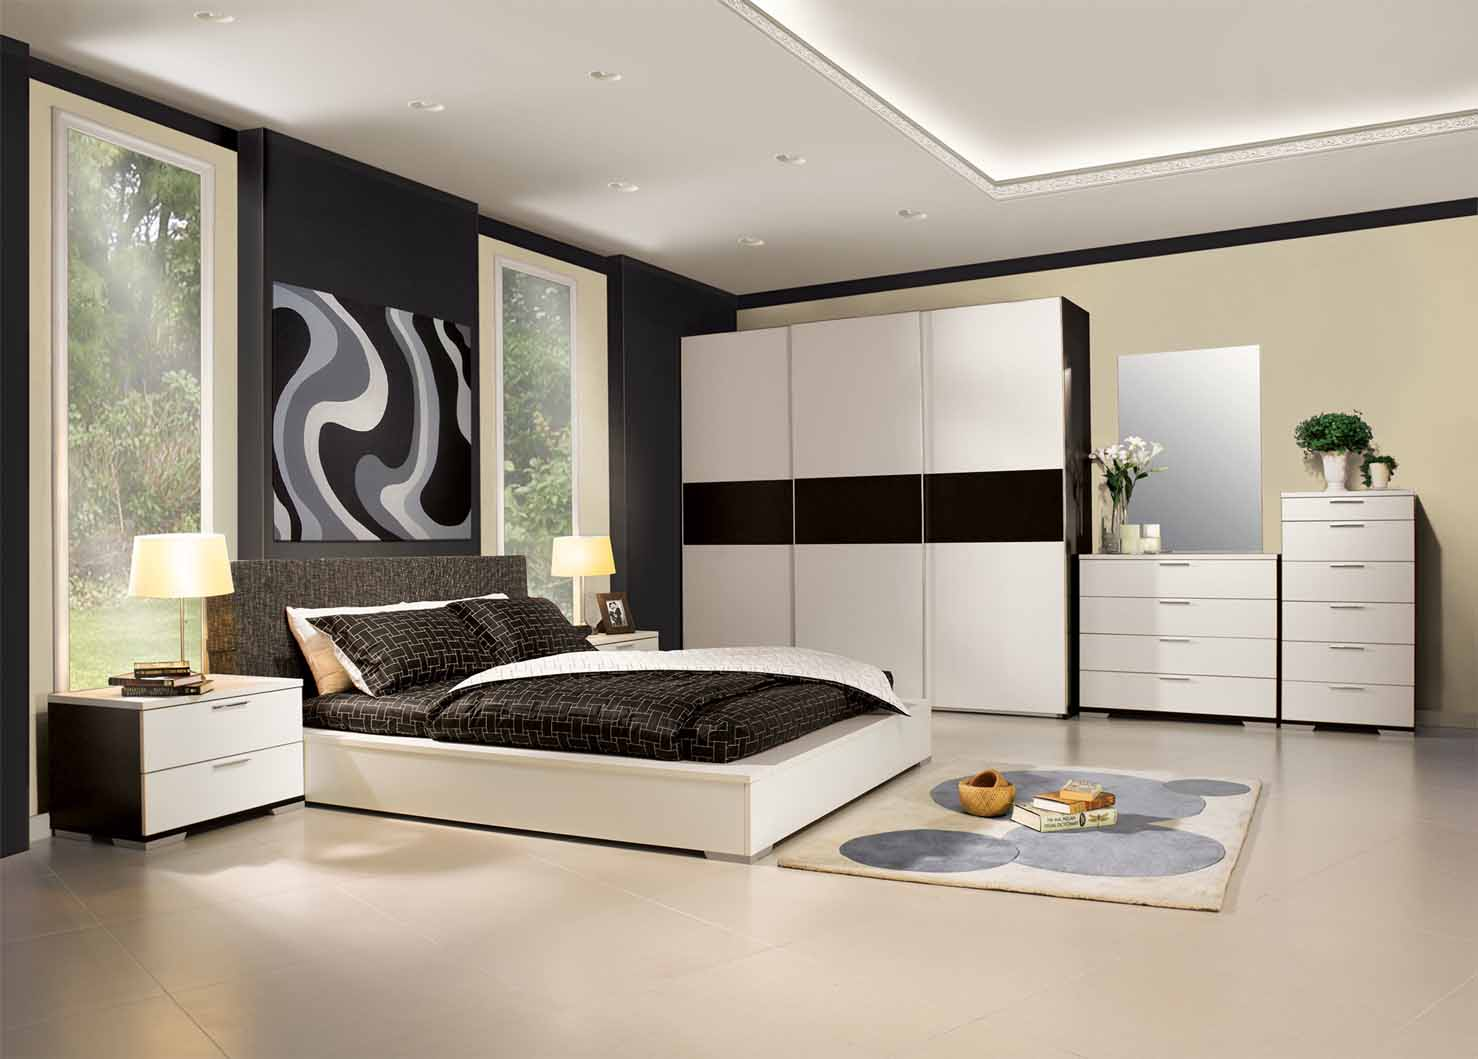 Black White Bedroom Furniture: 11 Best Bedroom Furniture 2012